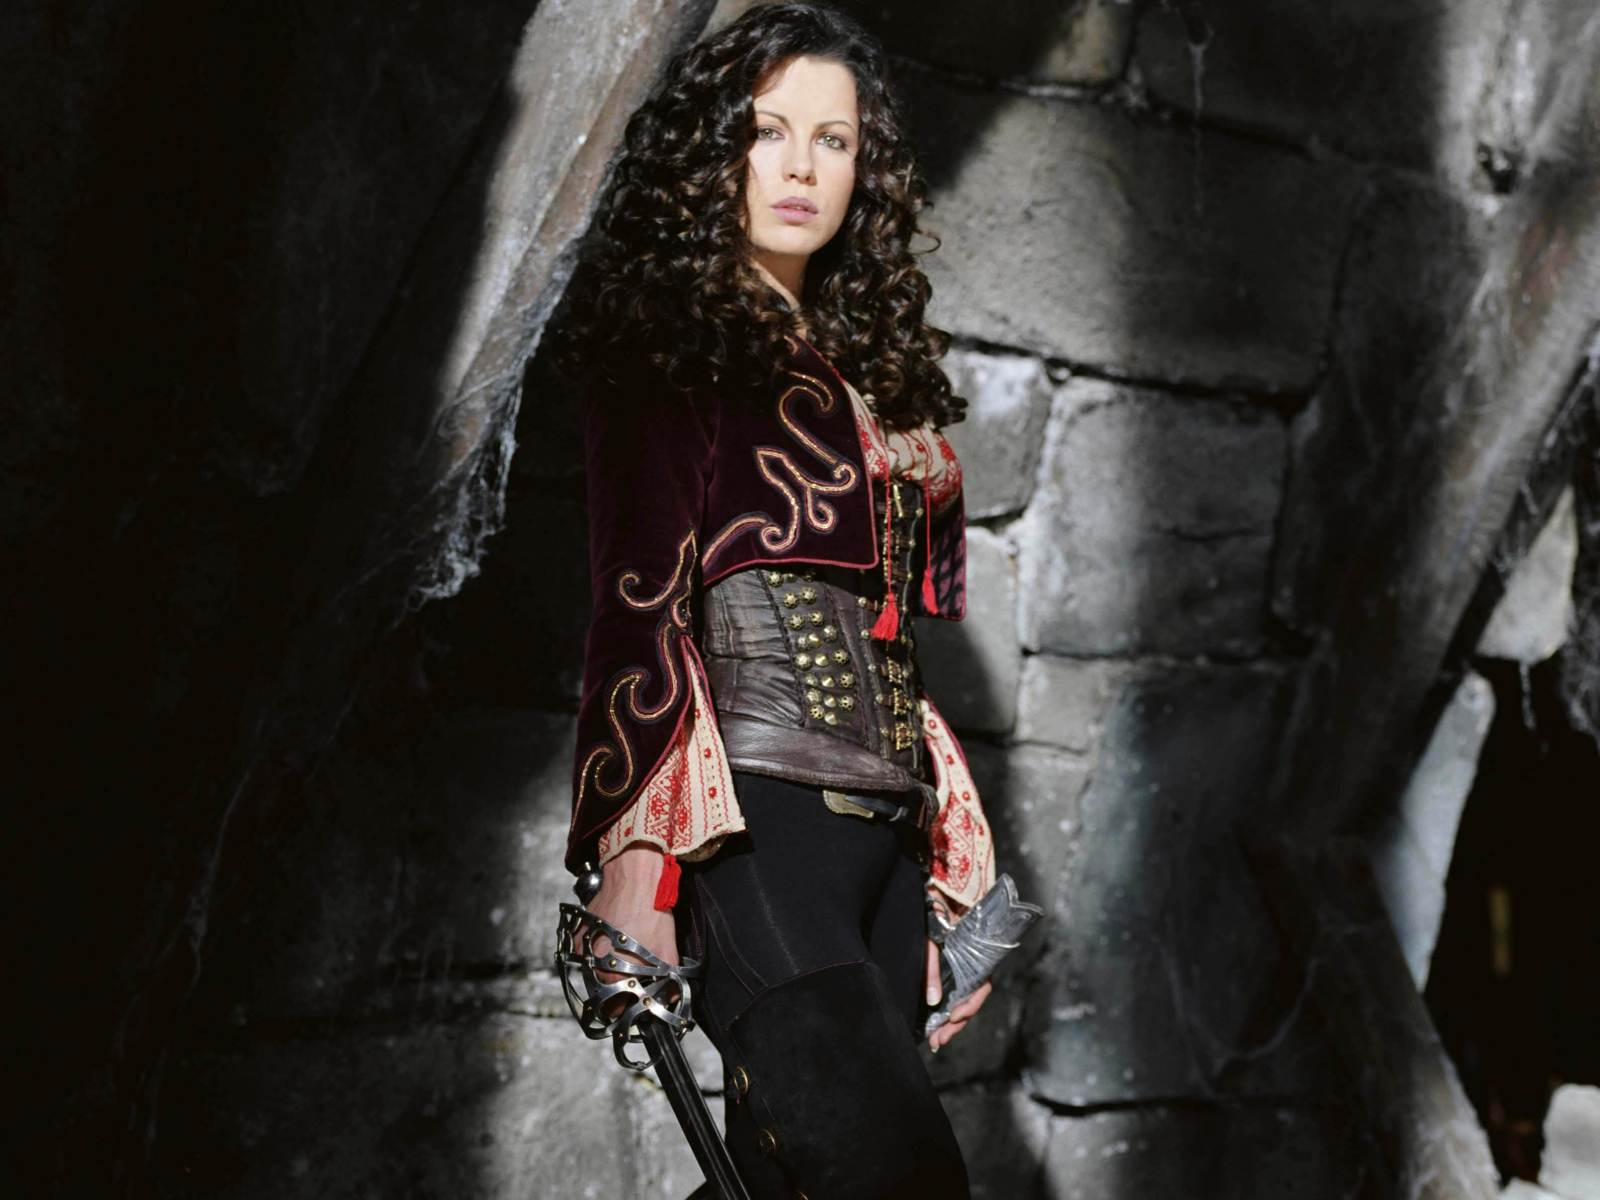 Van Helsing wallpapers and images   wallpapers pictures photos 1600x1200